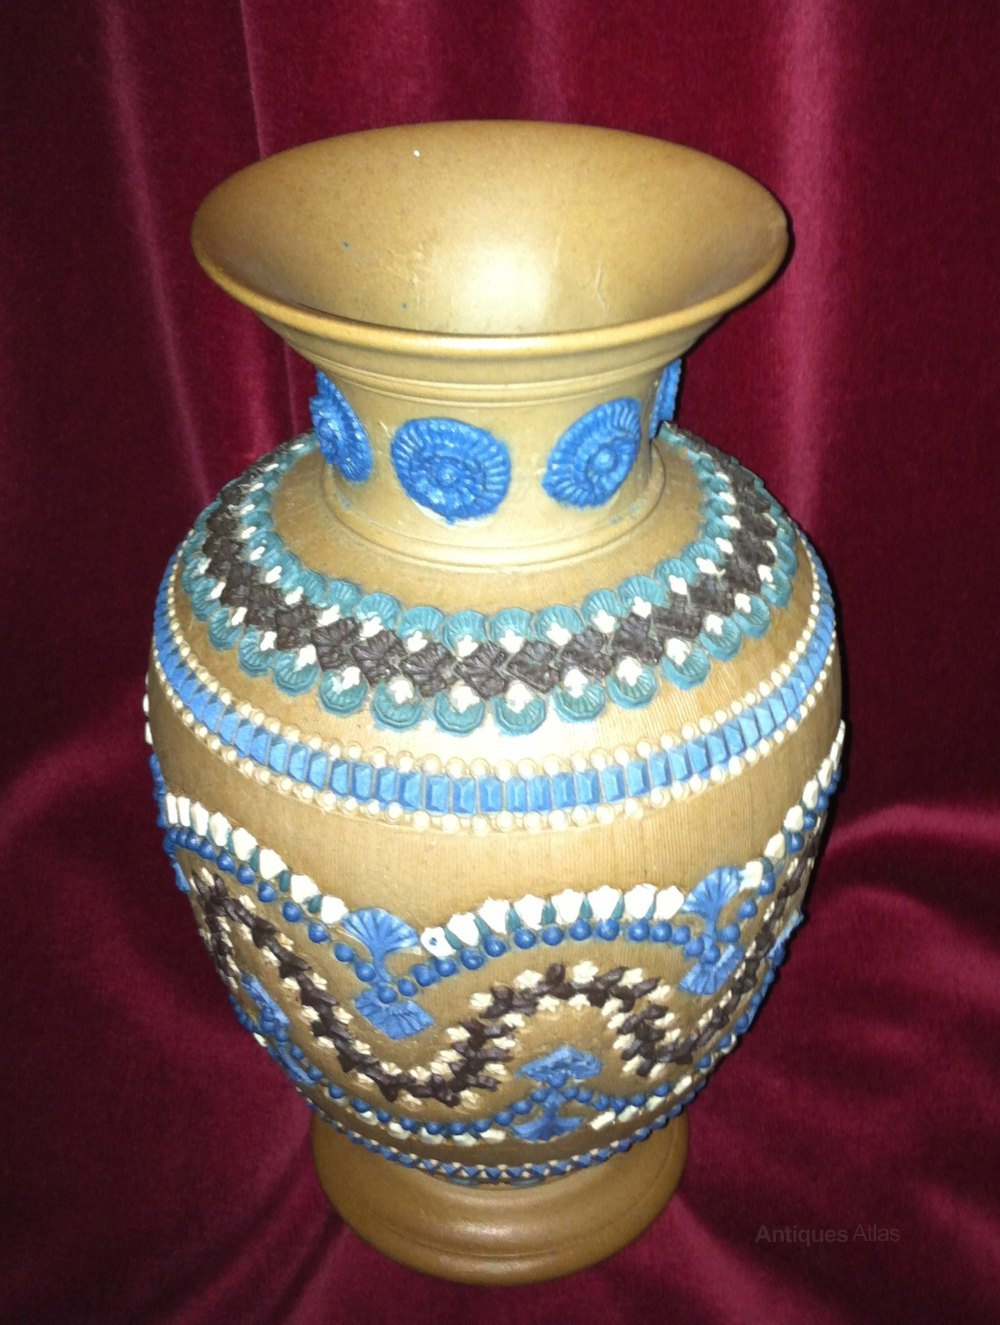 Antiques atlas early doulton silicon ware vase 1882 early doulton silicon ware vase 1882 doulton lambeth pottery vases jugs and plates reviewsmspy